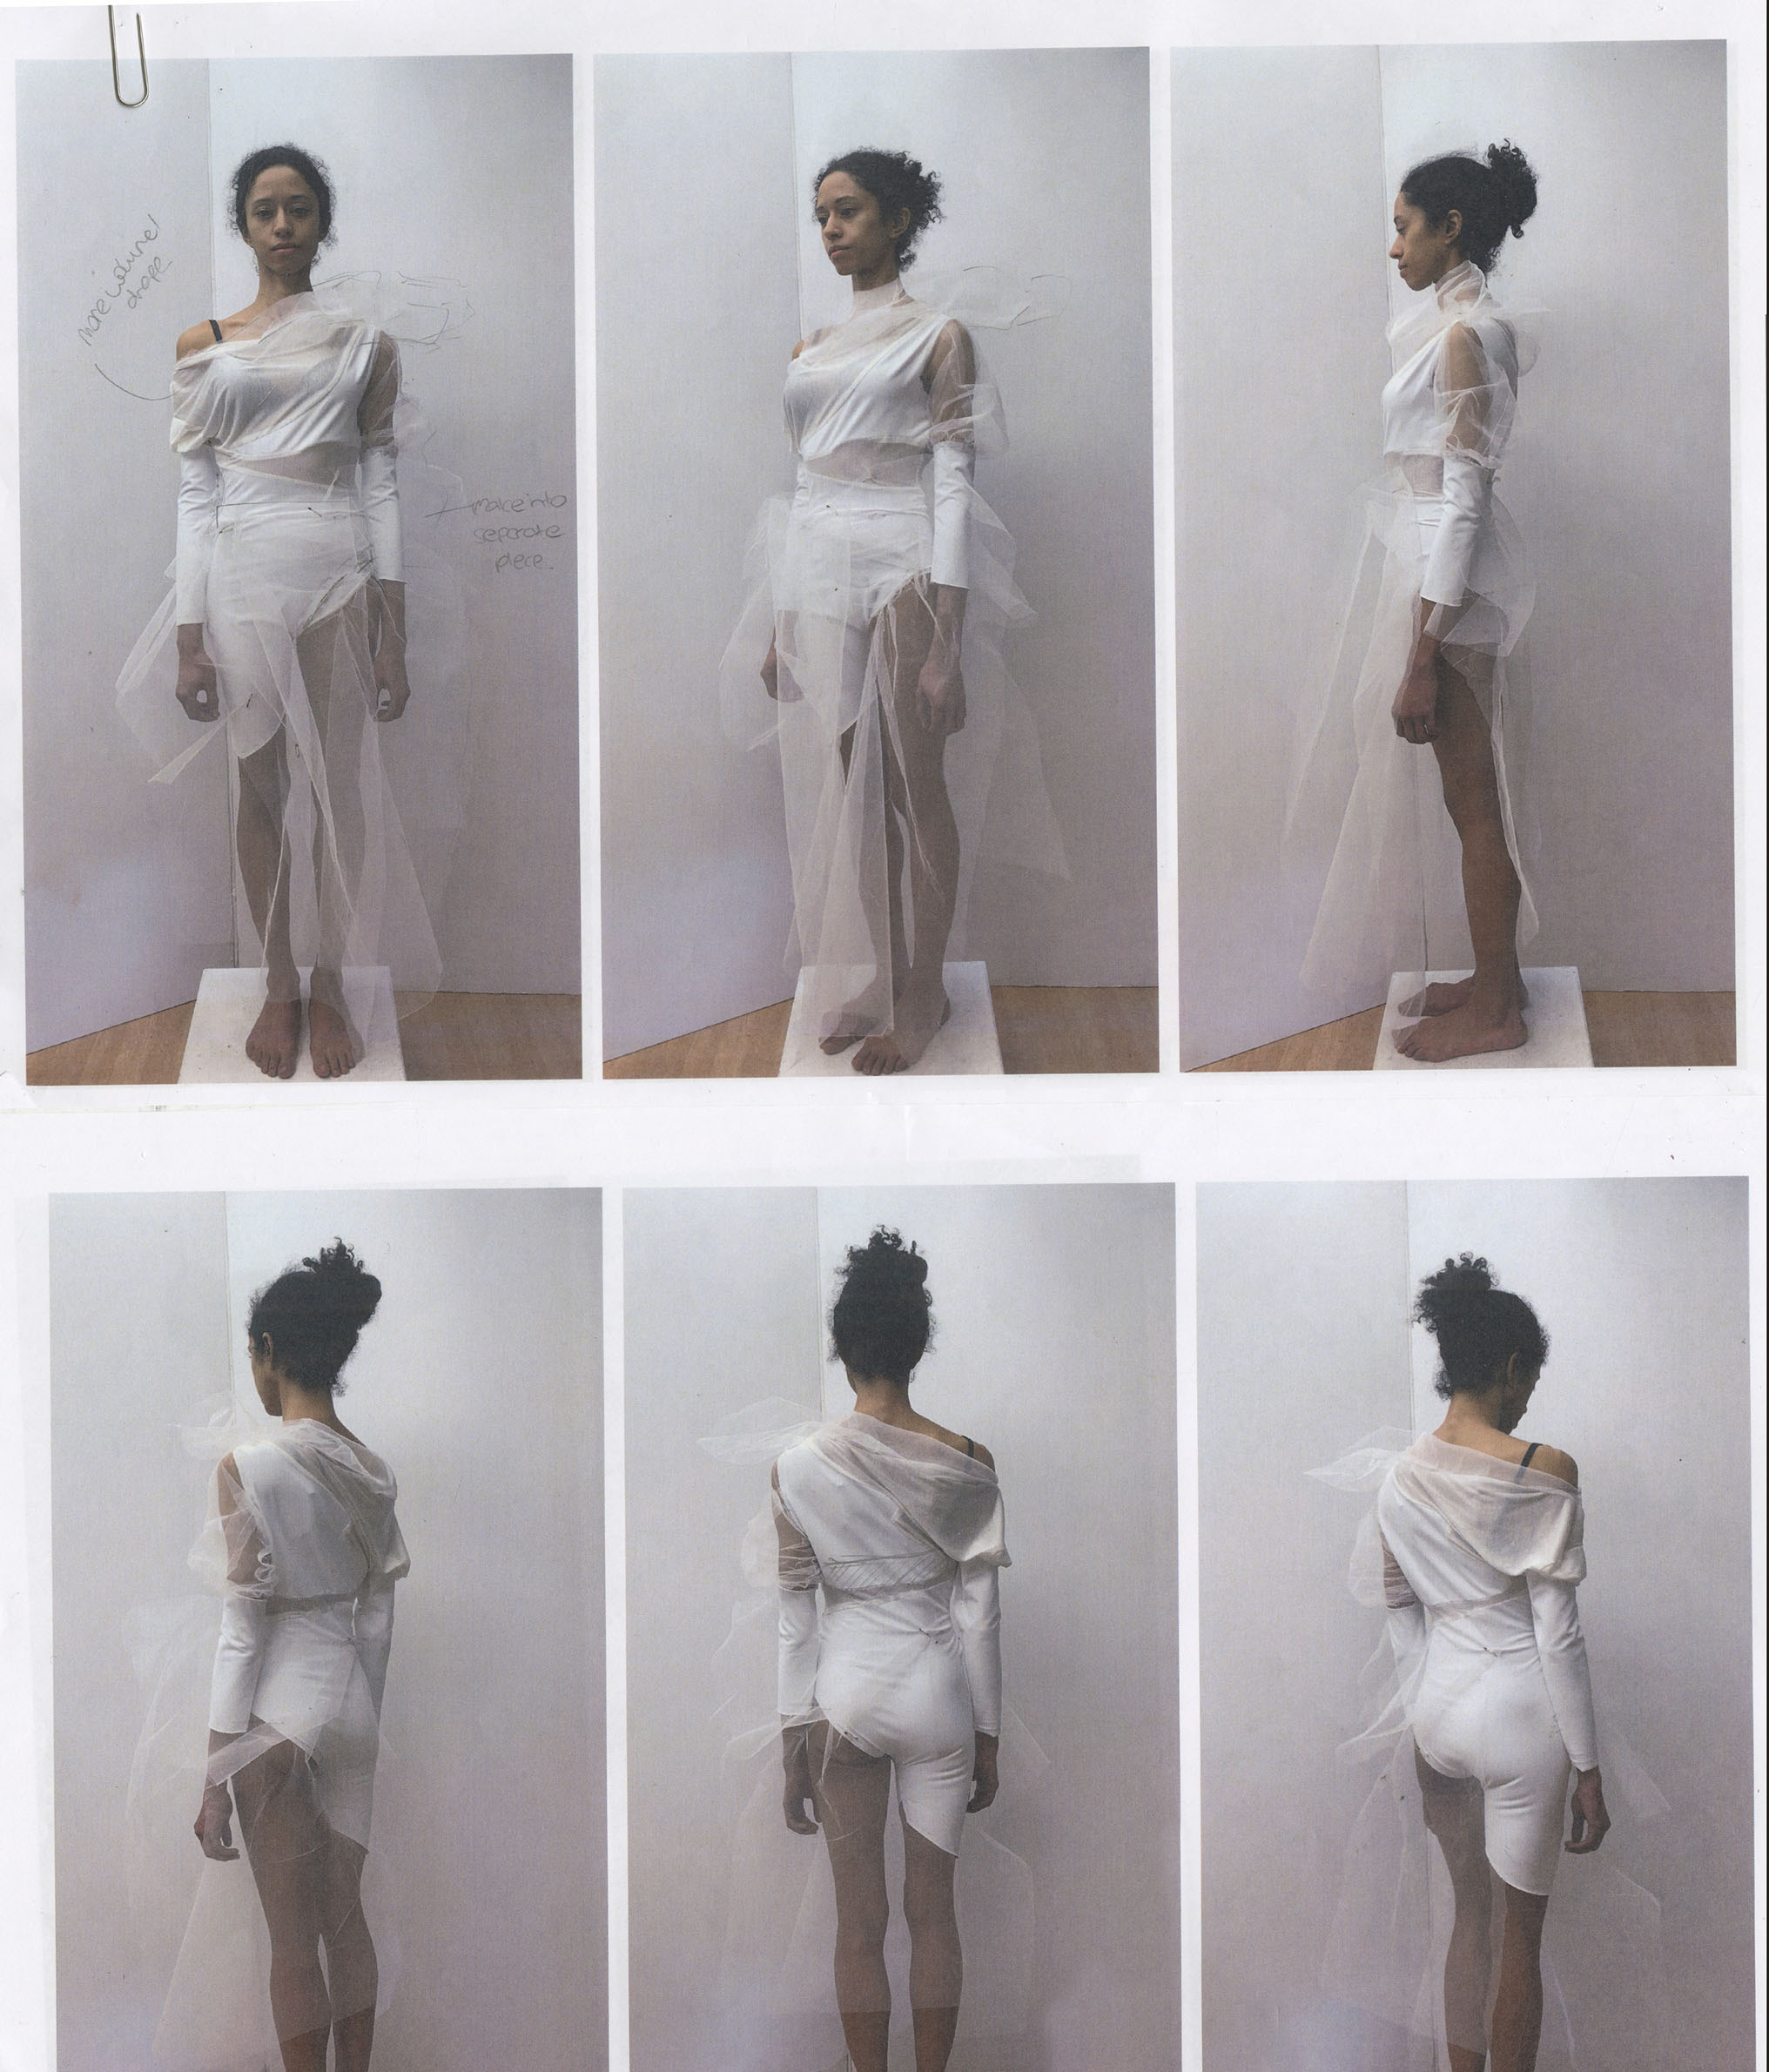 Lily Xu: Knitting Yourself Back Together